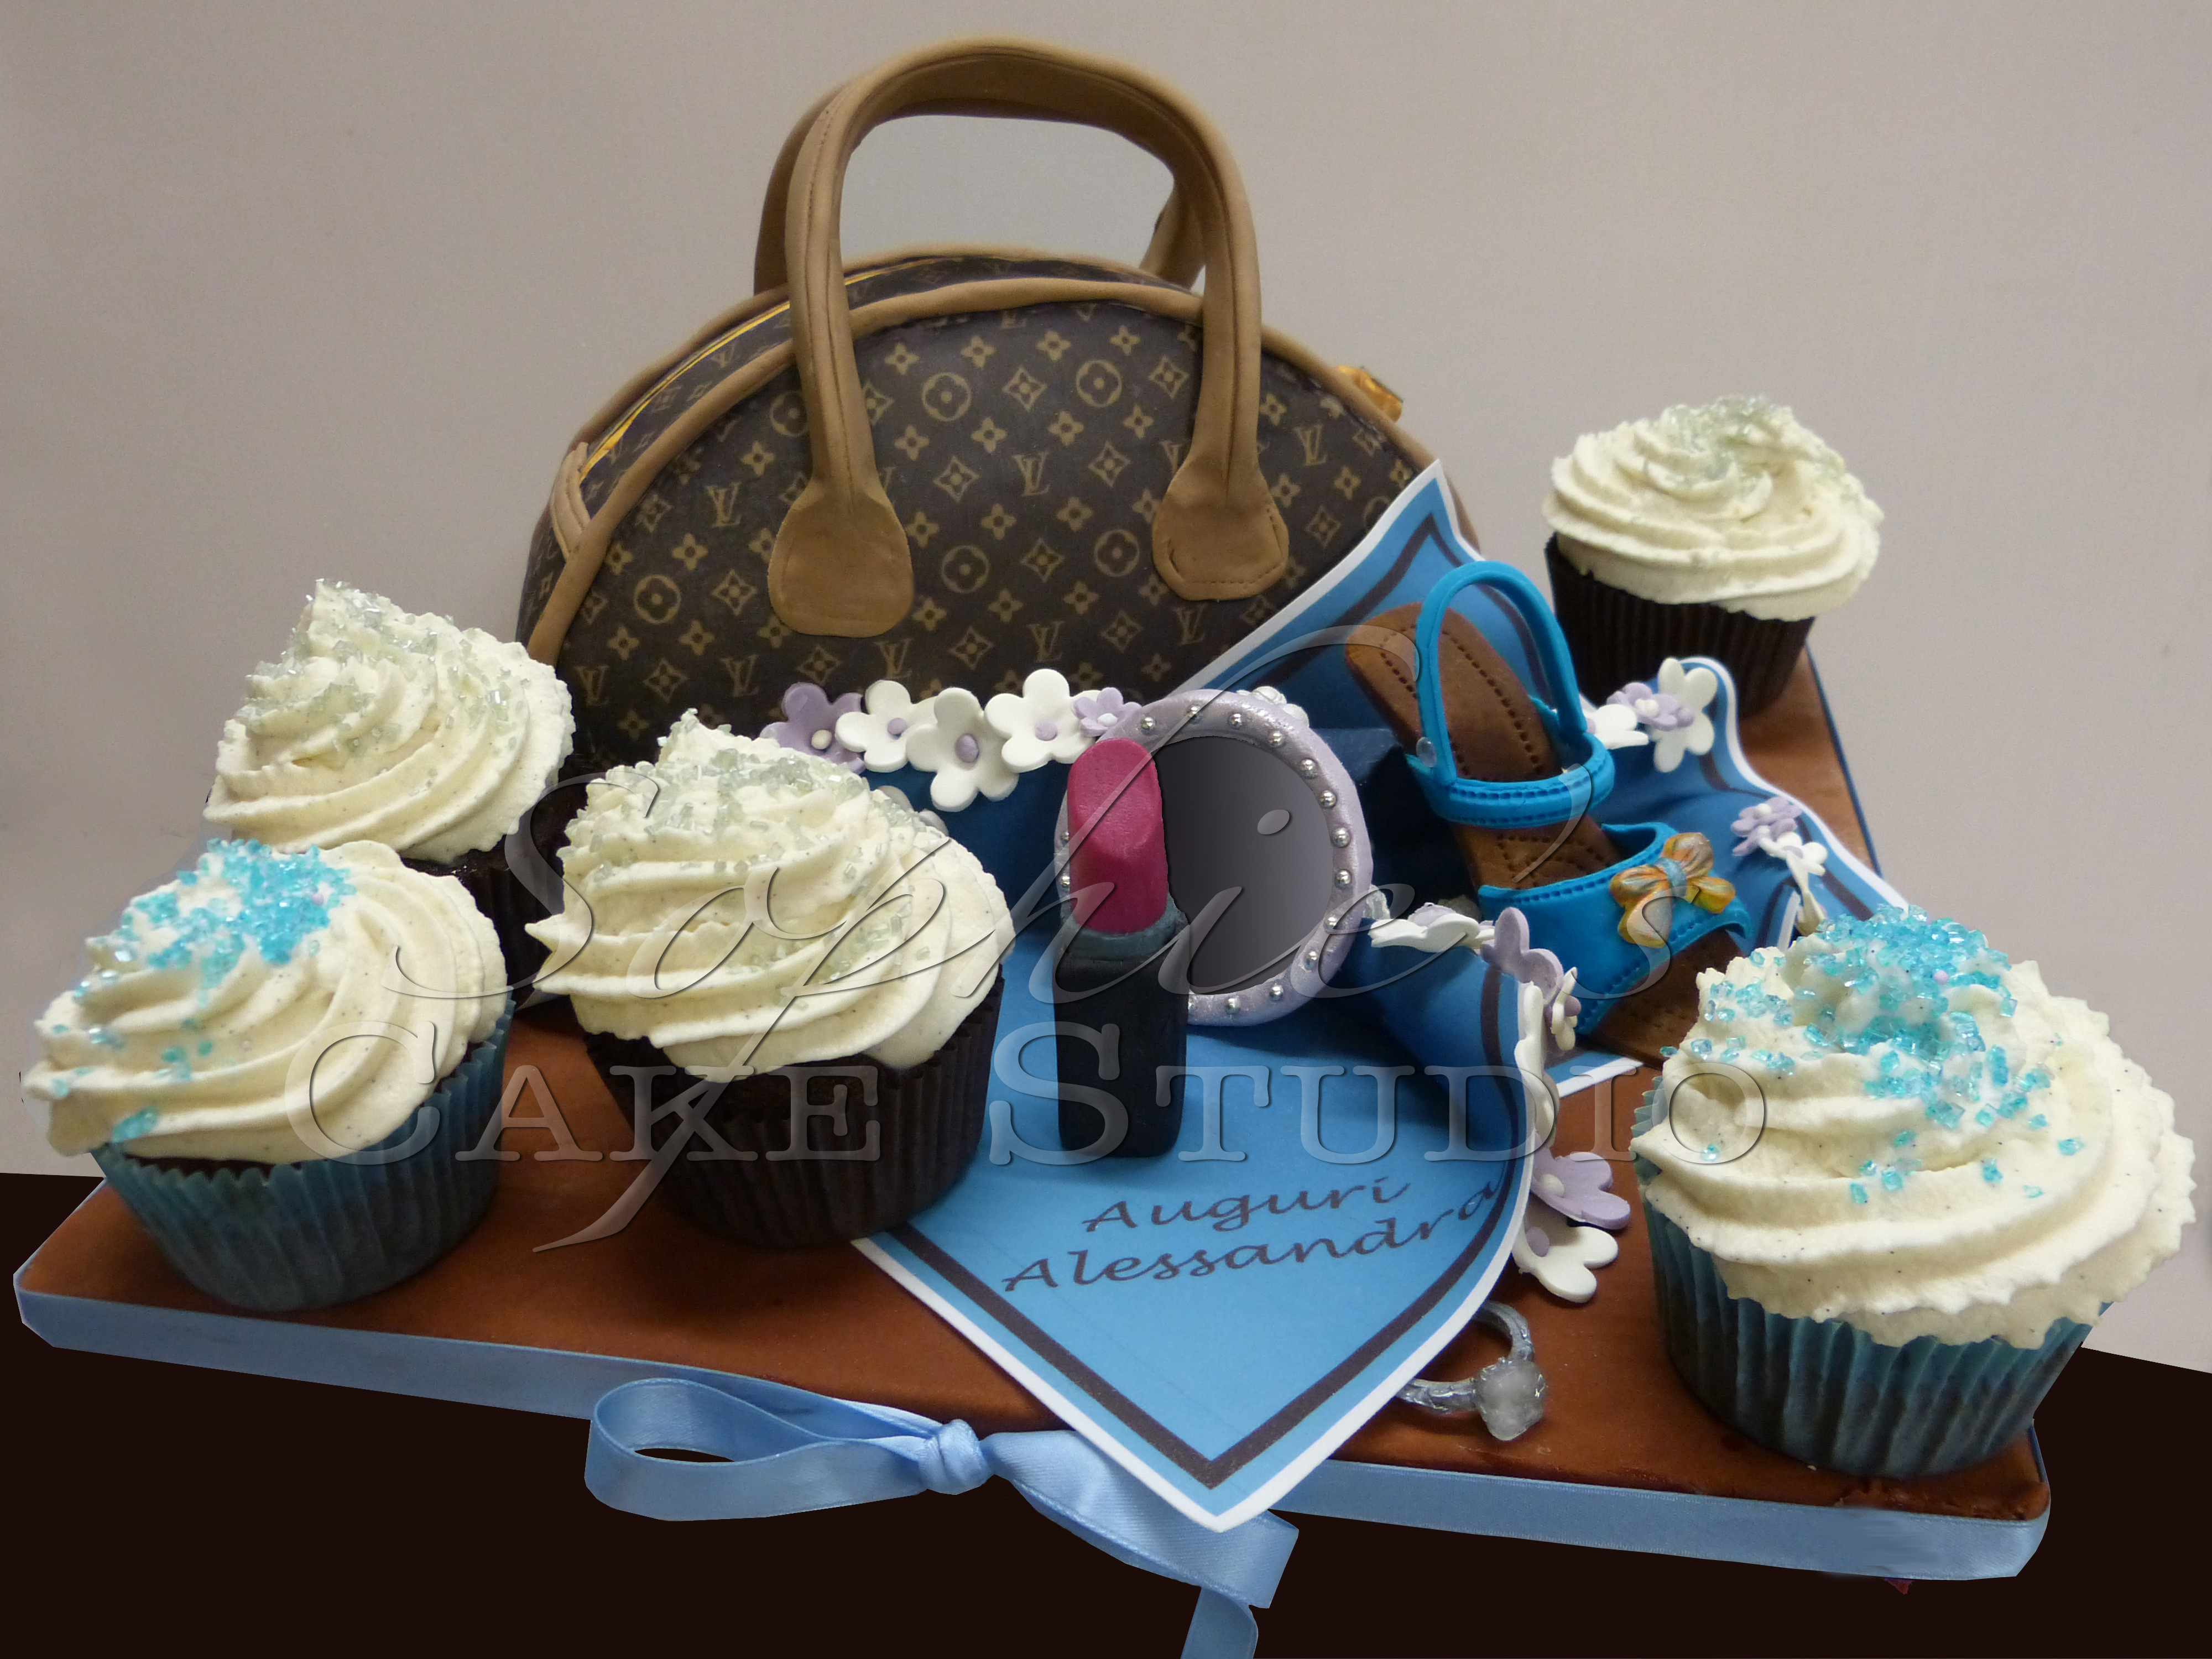 sac louis vuitton et cupcakes watermark.jpg